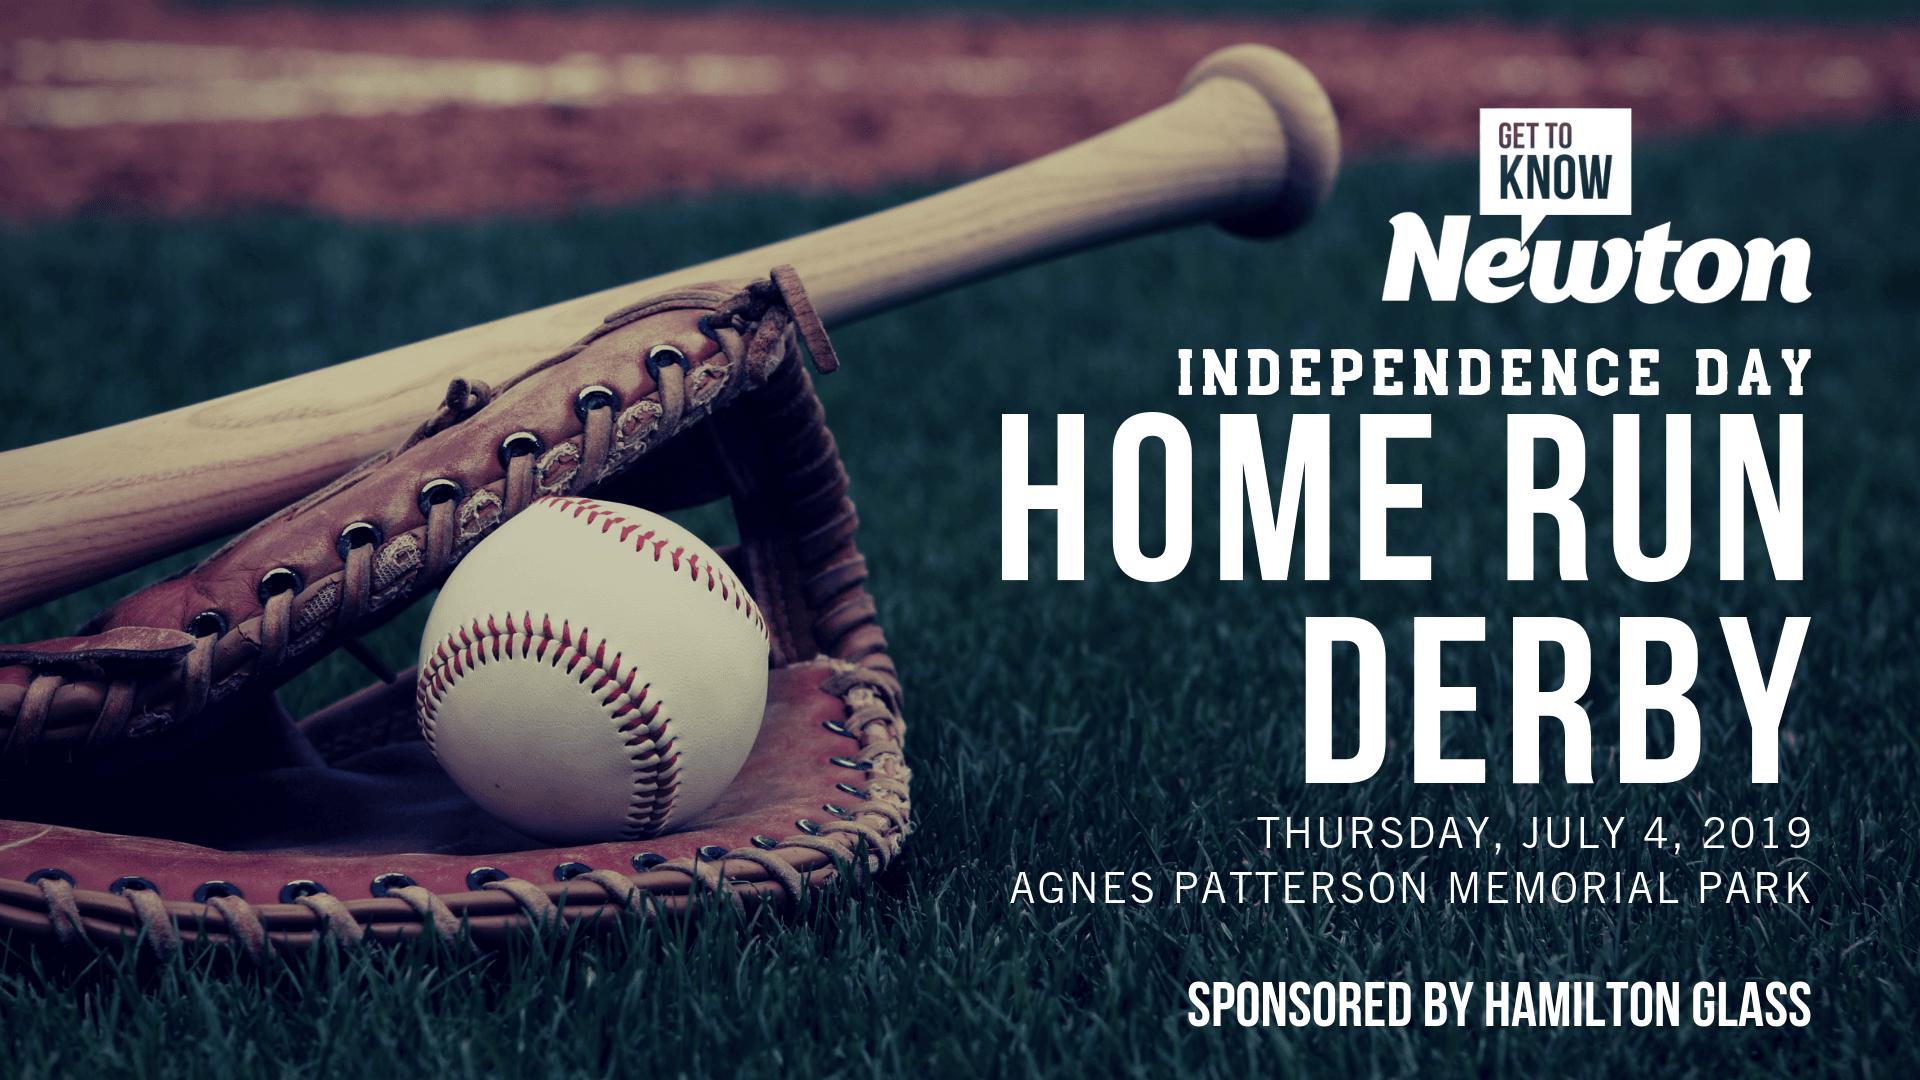 Independence Day Home Run Derby